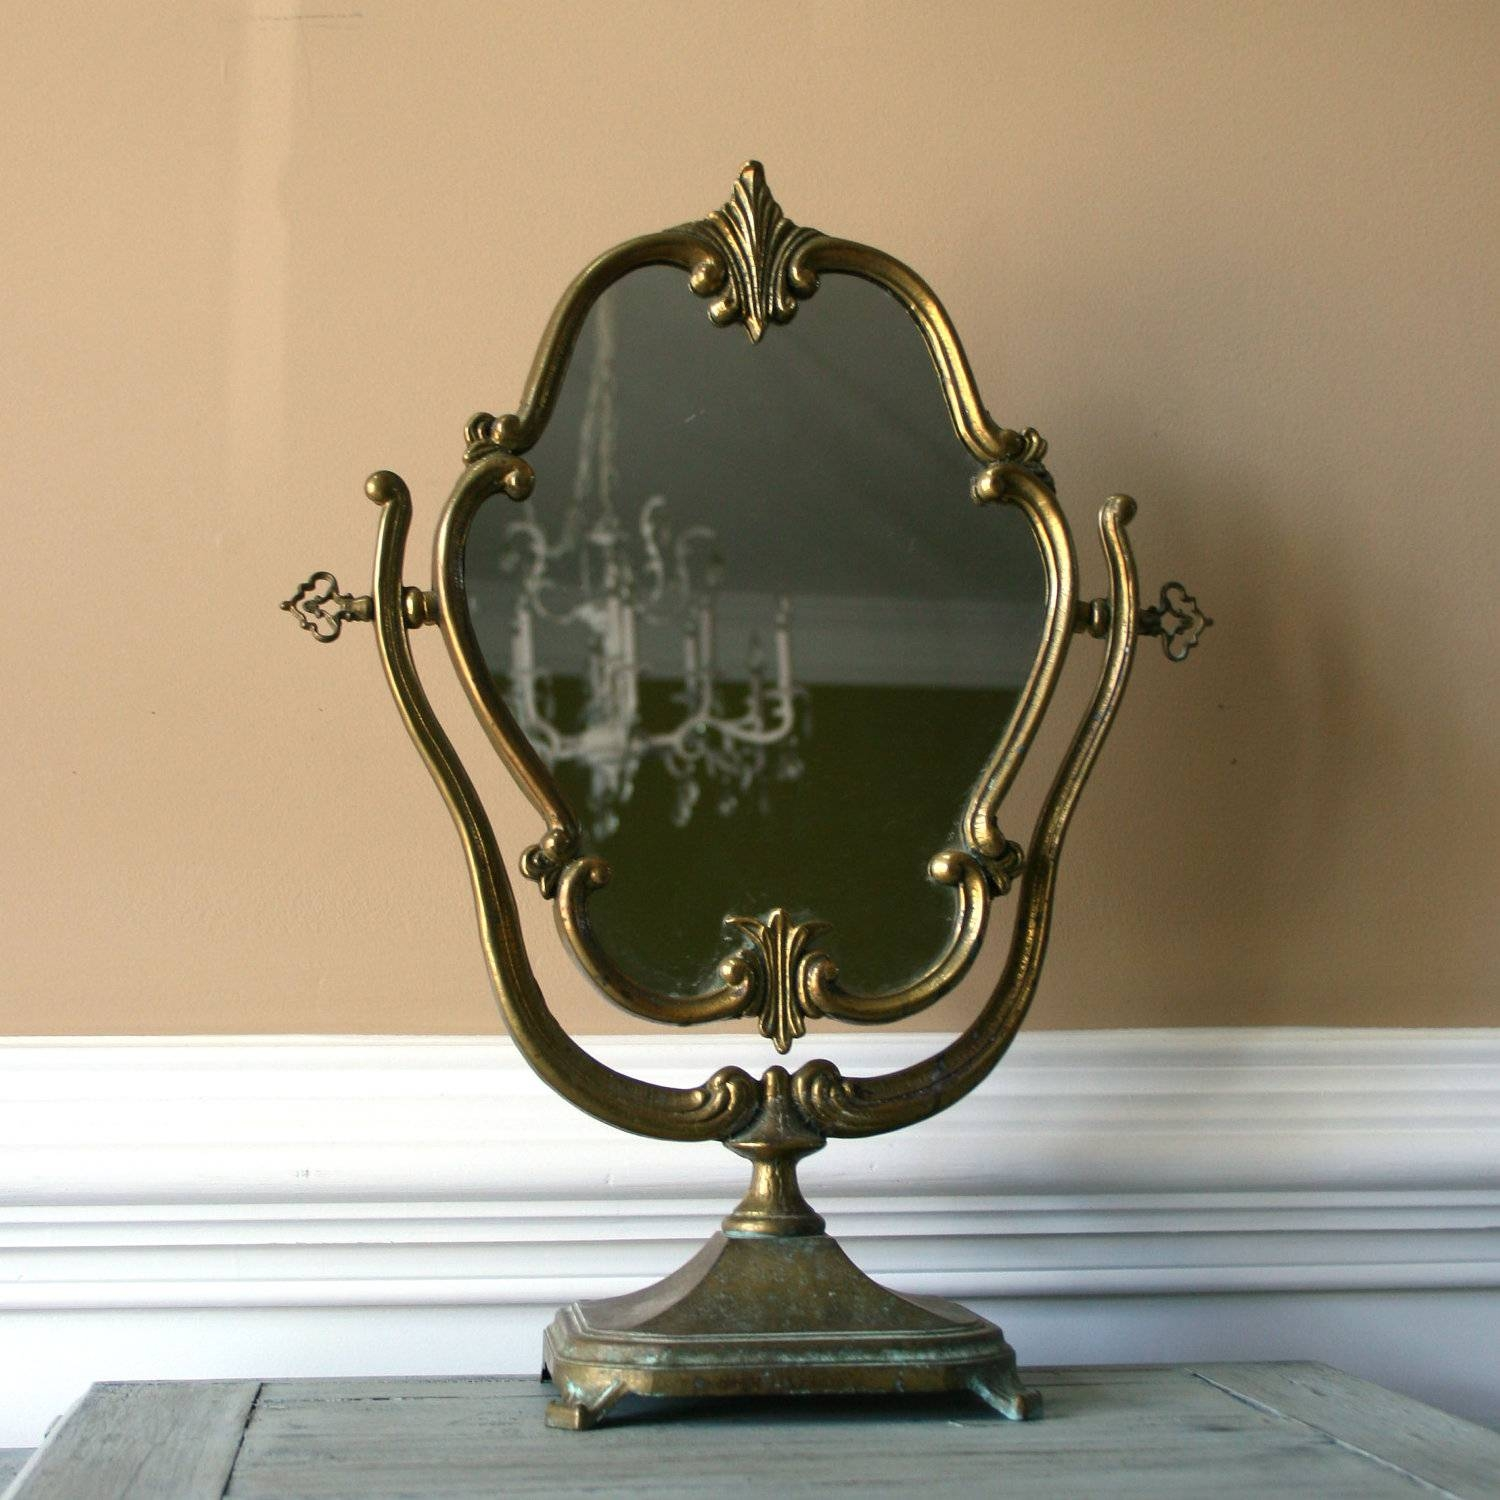 Antique Vanity Mirror Brushed Bronze With Stand As Decorate Make intended for Vintage Stand Up Mirrors (Image 3 of 15)